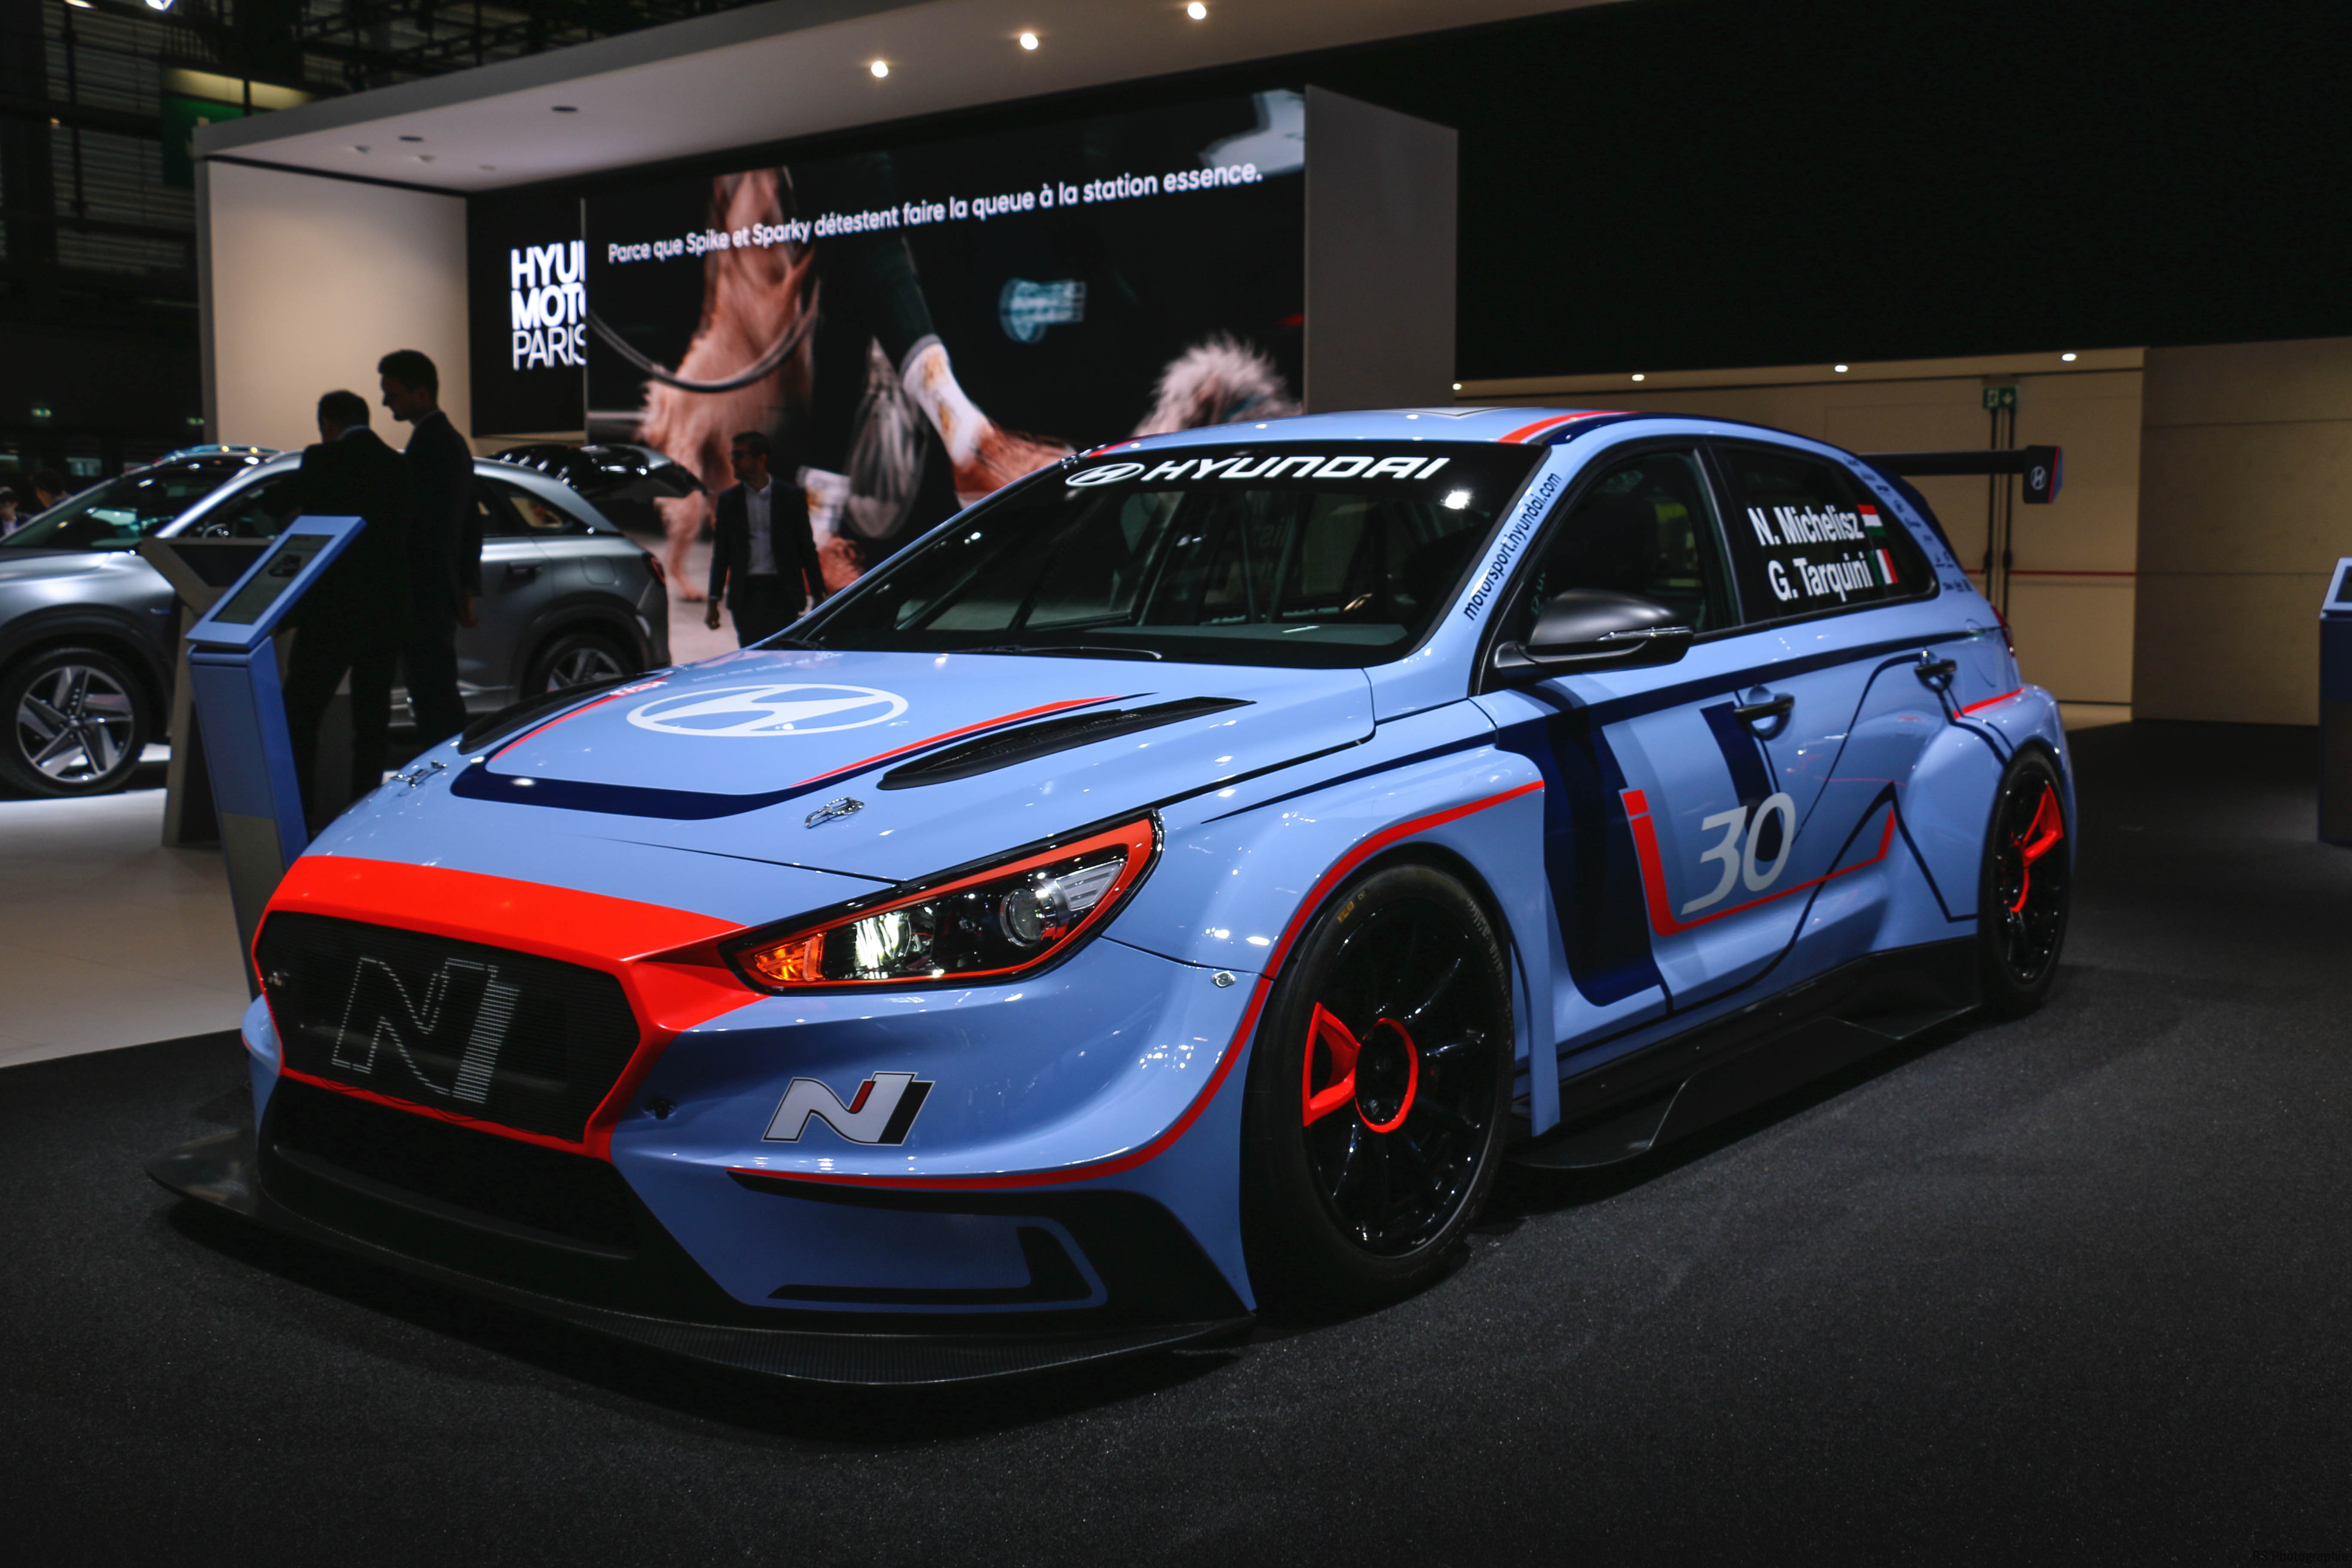 Hyundai Motorsport i30 N TCR - Paris Motor Show - 2018 - Mondial Auto - photo by Arnaud Demasier RS Photographie